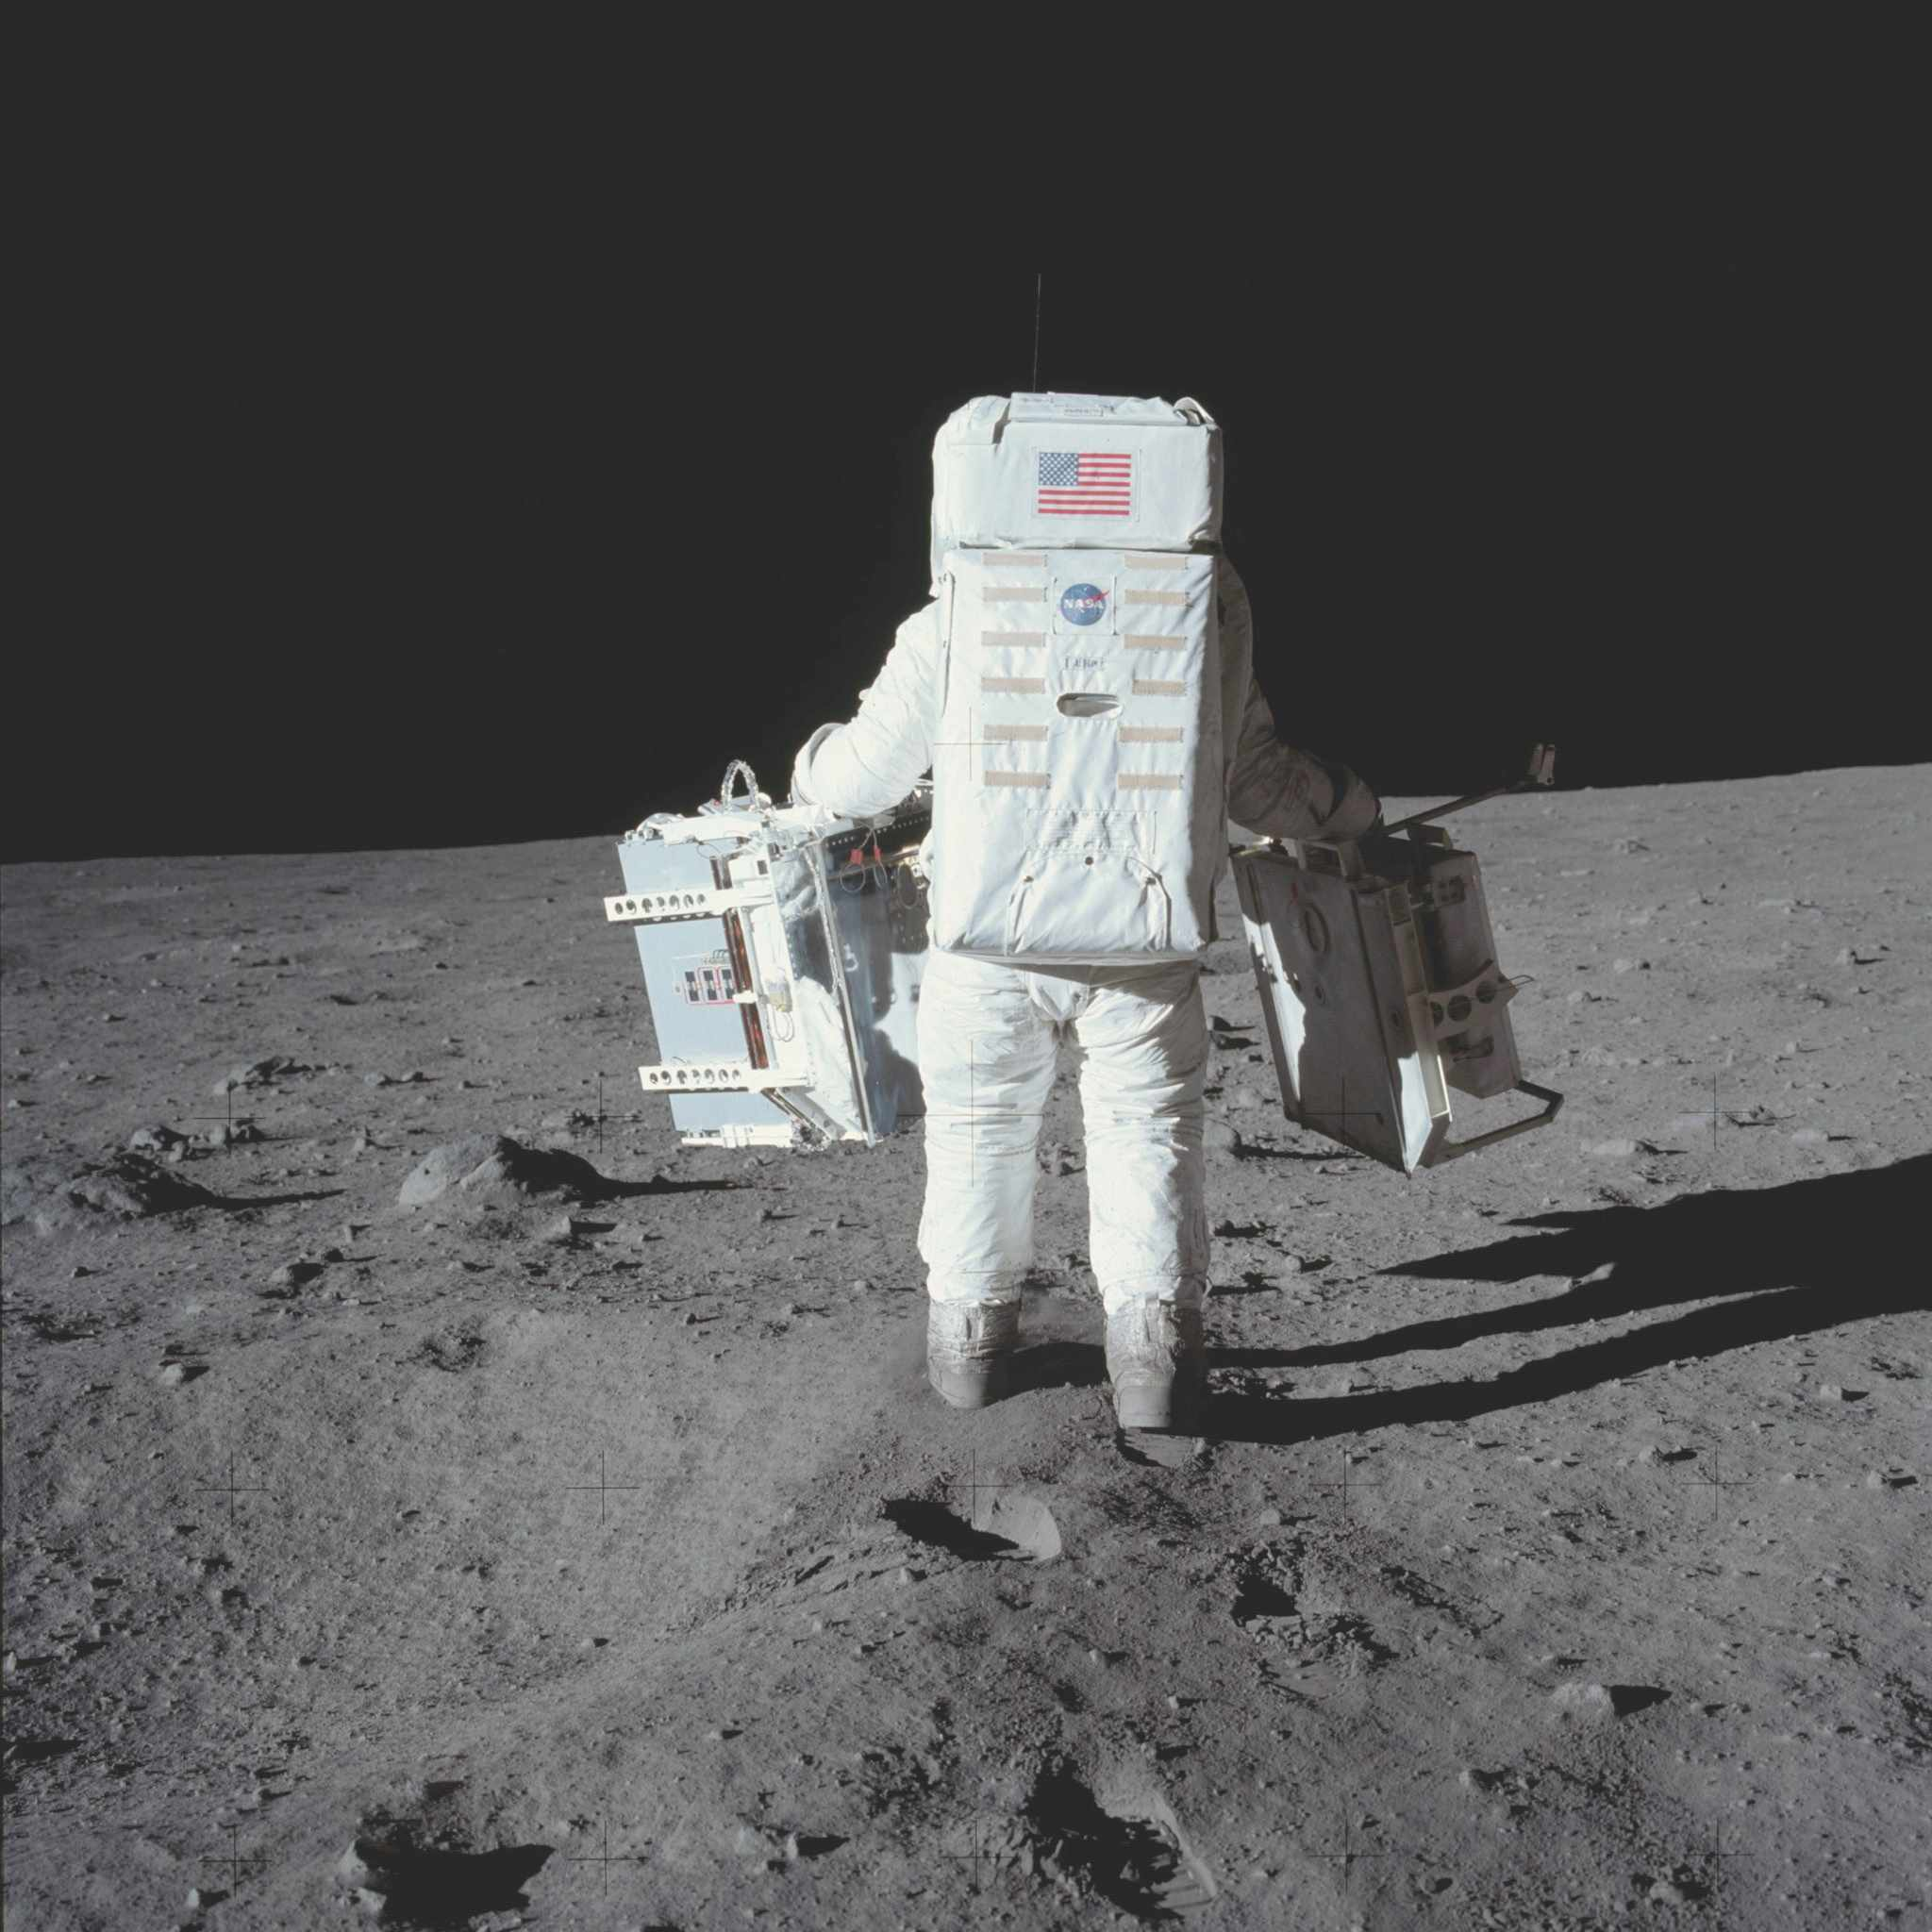 Reduced lunar gravity makes it easy for Aldrin to carry a pair of experiment packages for deployment © NASA/JPL